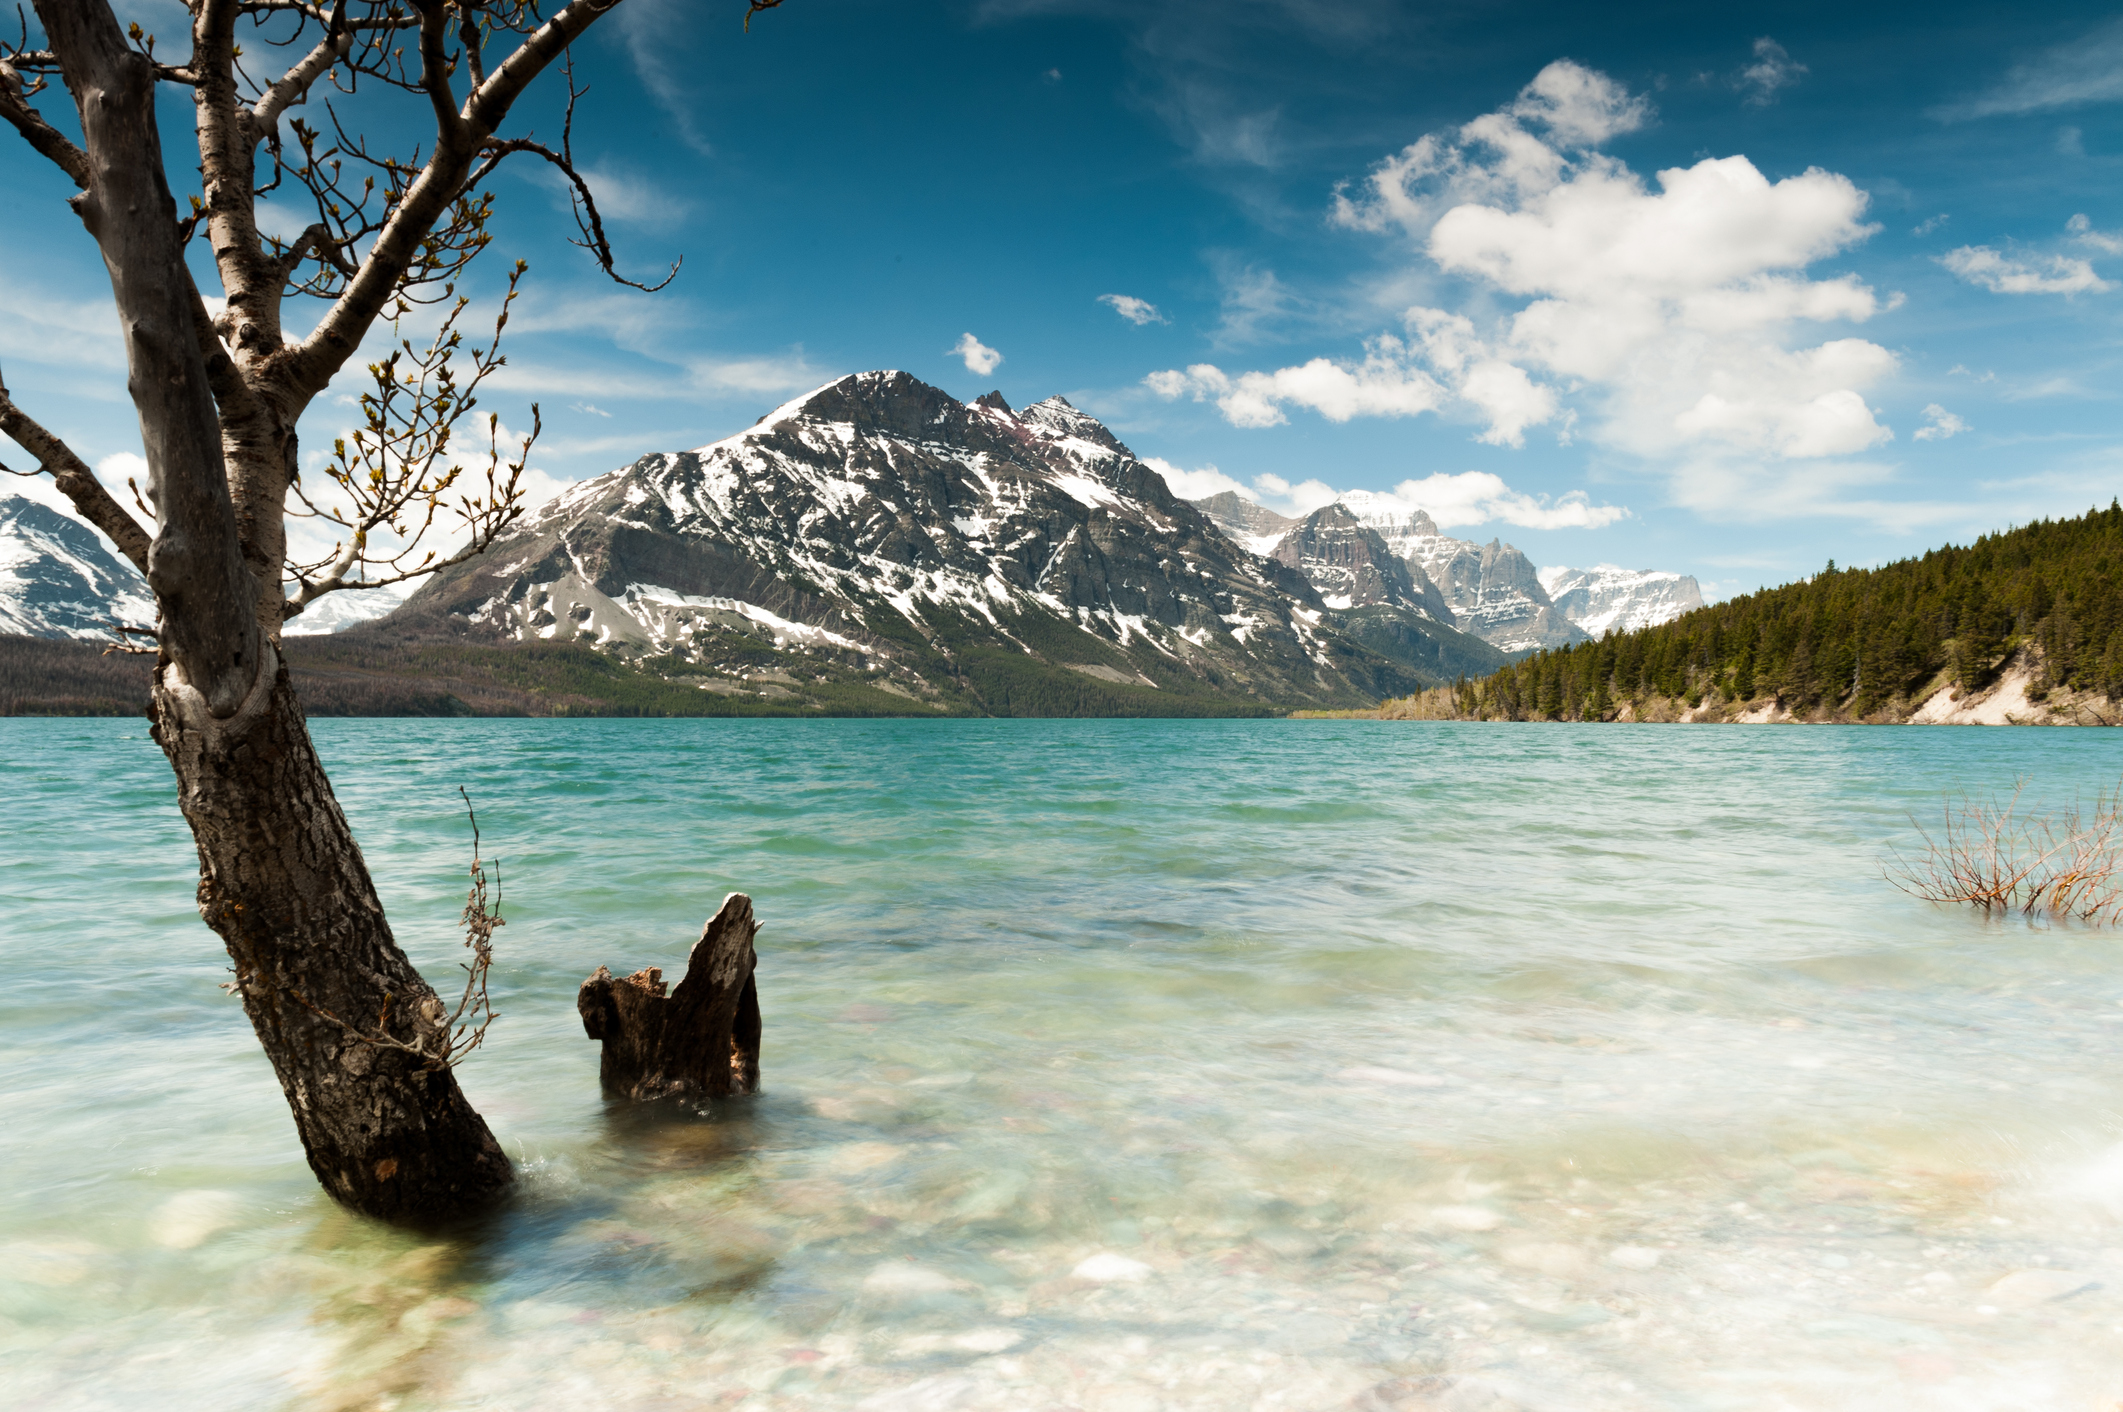 7-Days Victoria, Rocky Mountains, Icefild, Banff, Calgary Tour from Vancouver